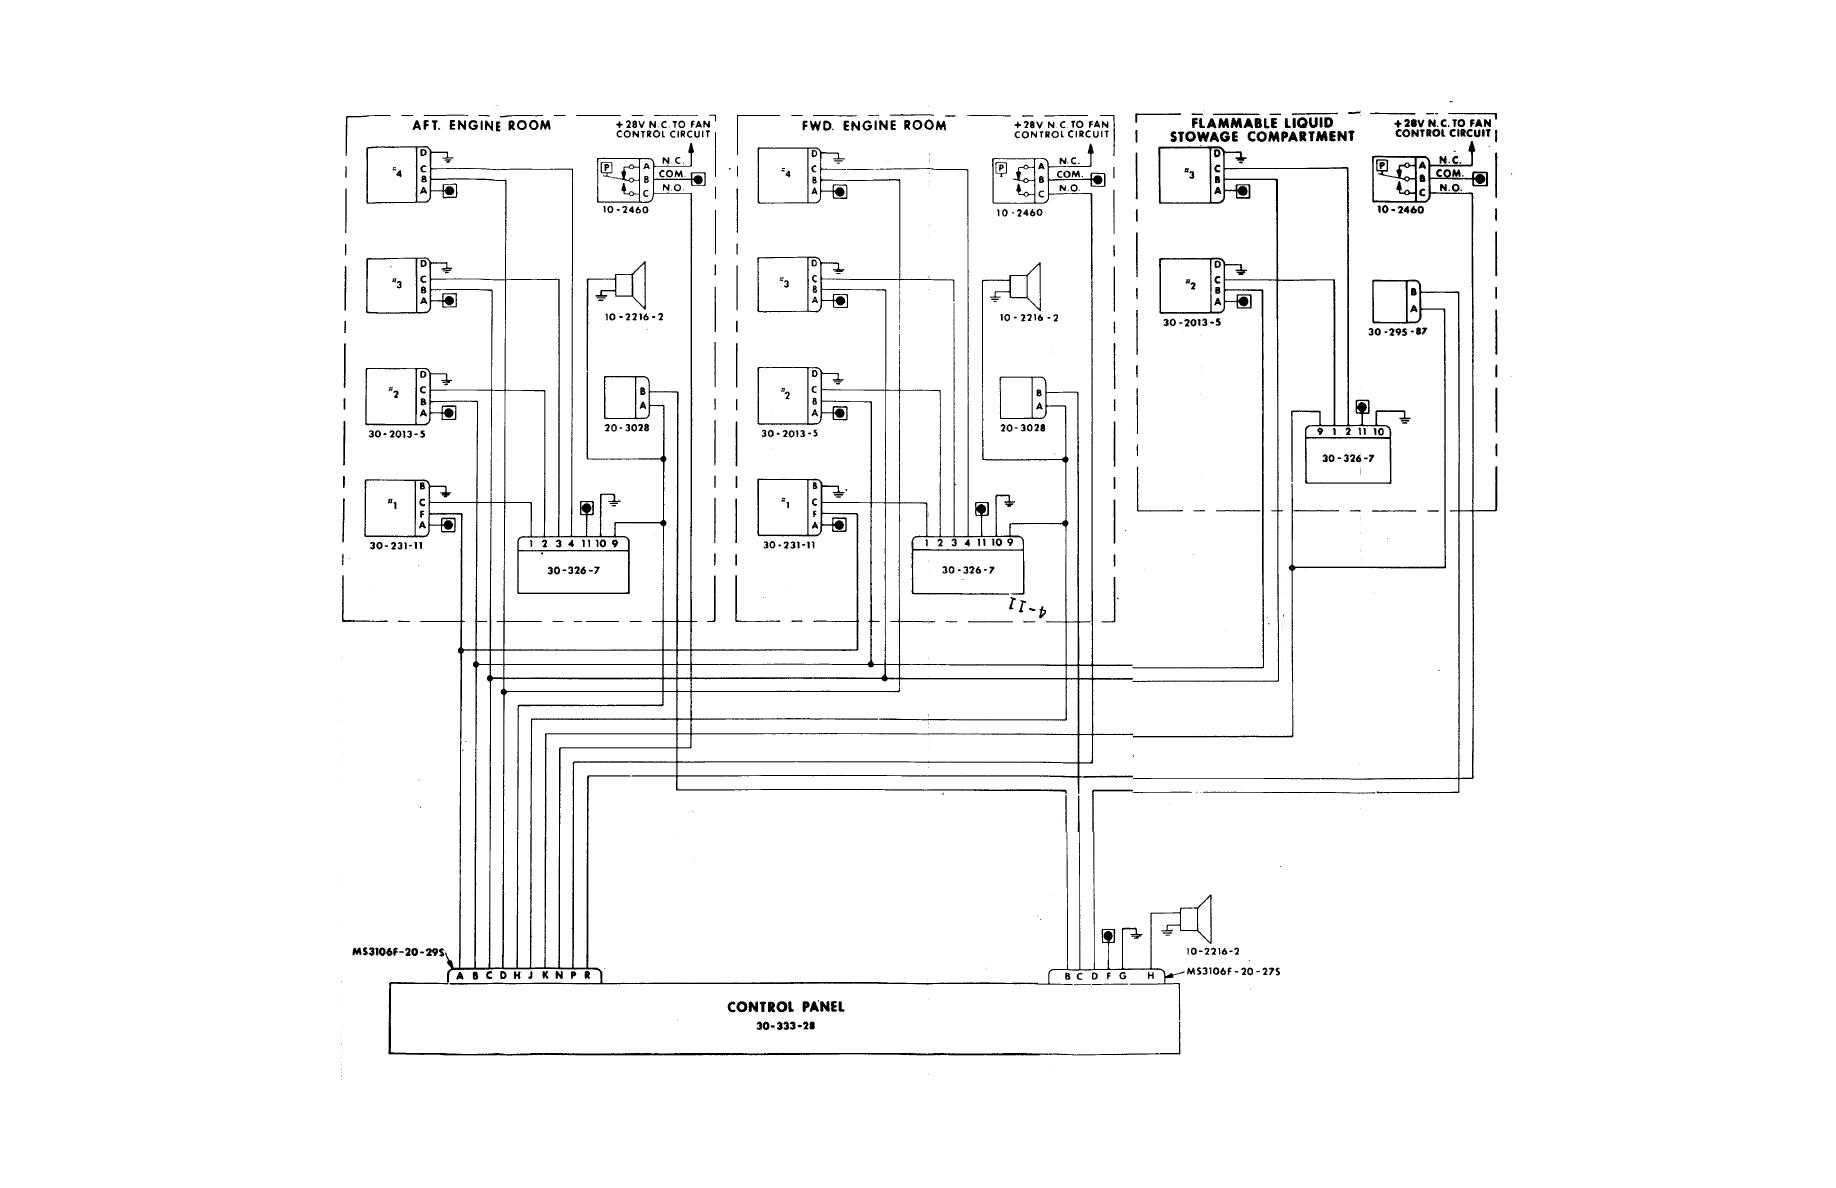 fire-alarm-system-wiring-diagrams images - frompo